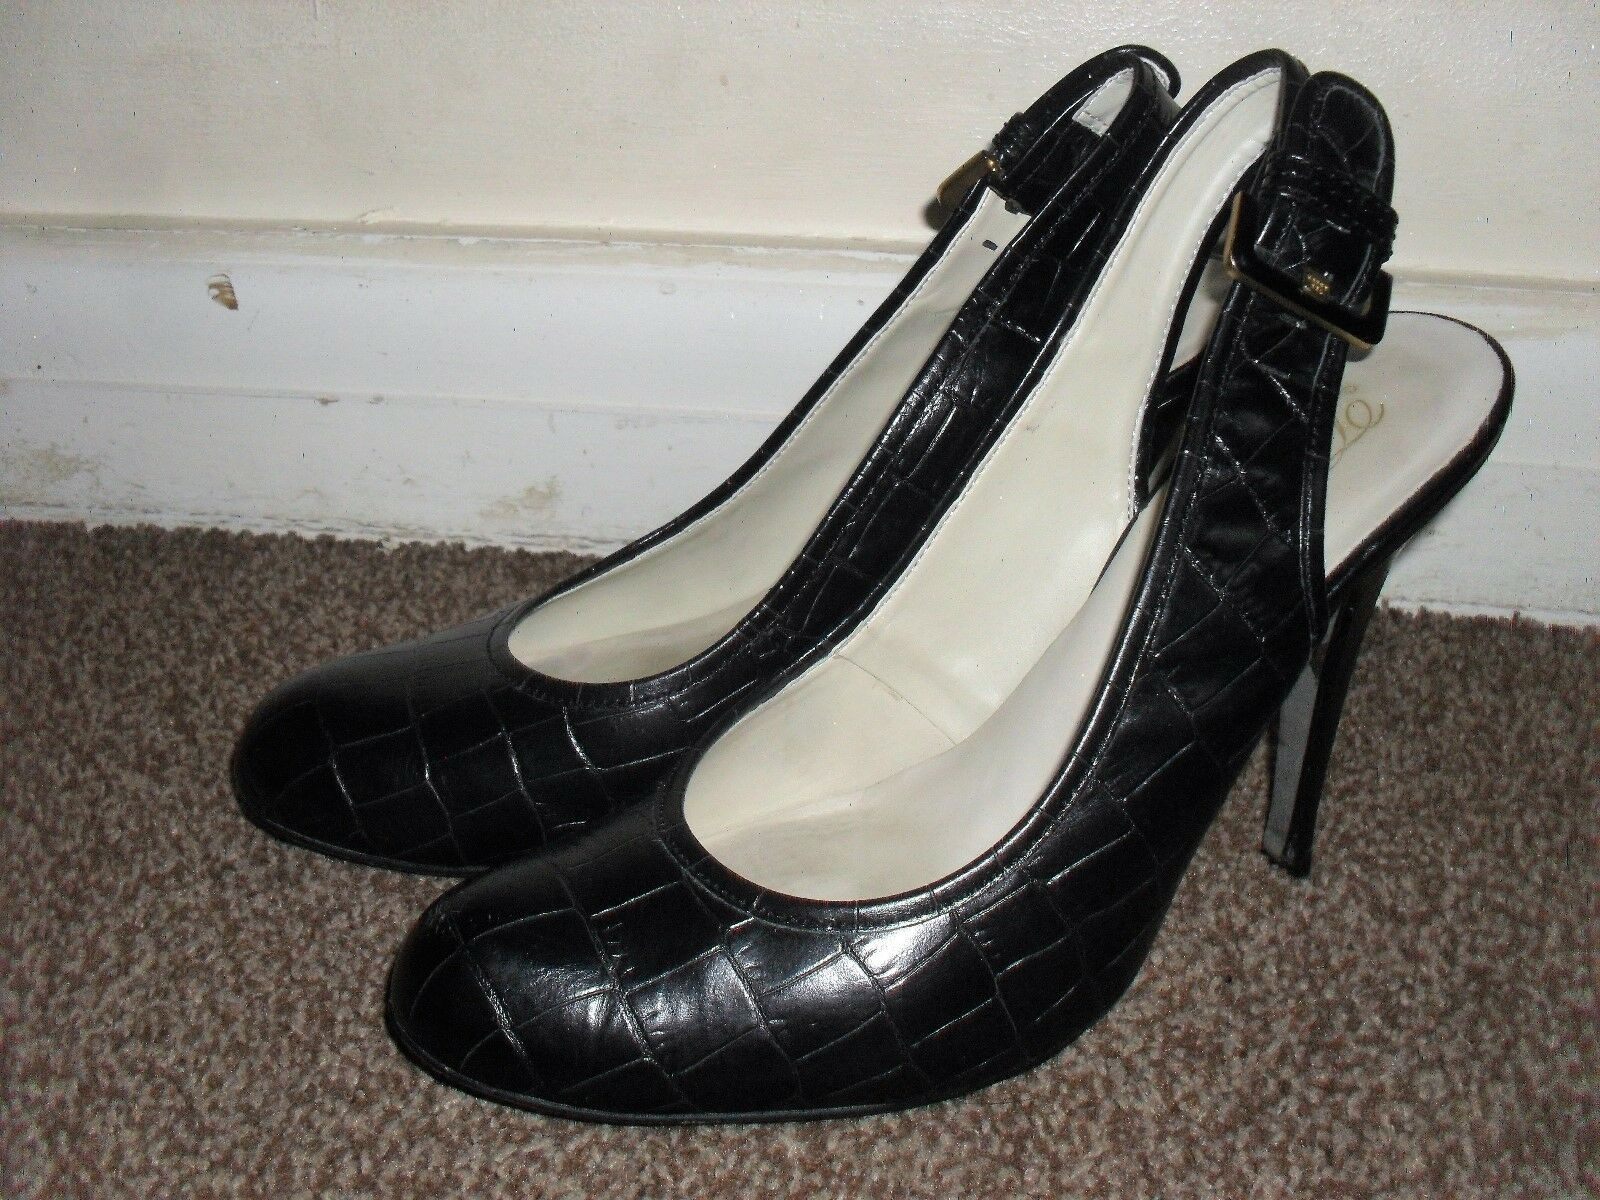 LADY'S TED BAKER BLACK HIGH UK HEELED SNAKESKIN EFFECT SHOES UK HIGH SIZE 7 a1b148